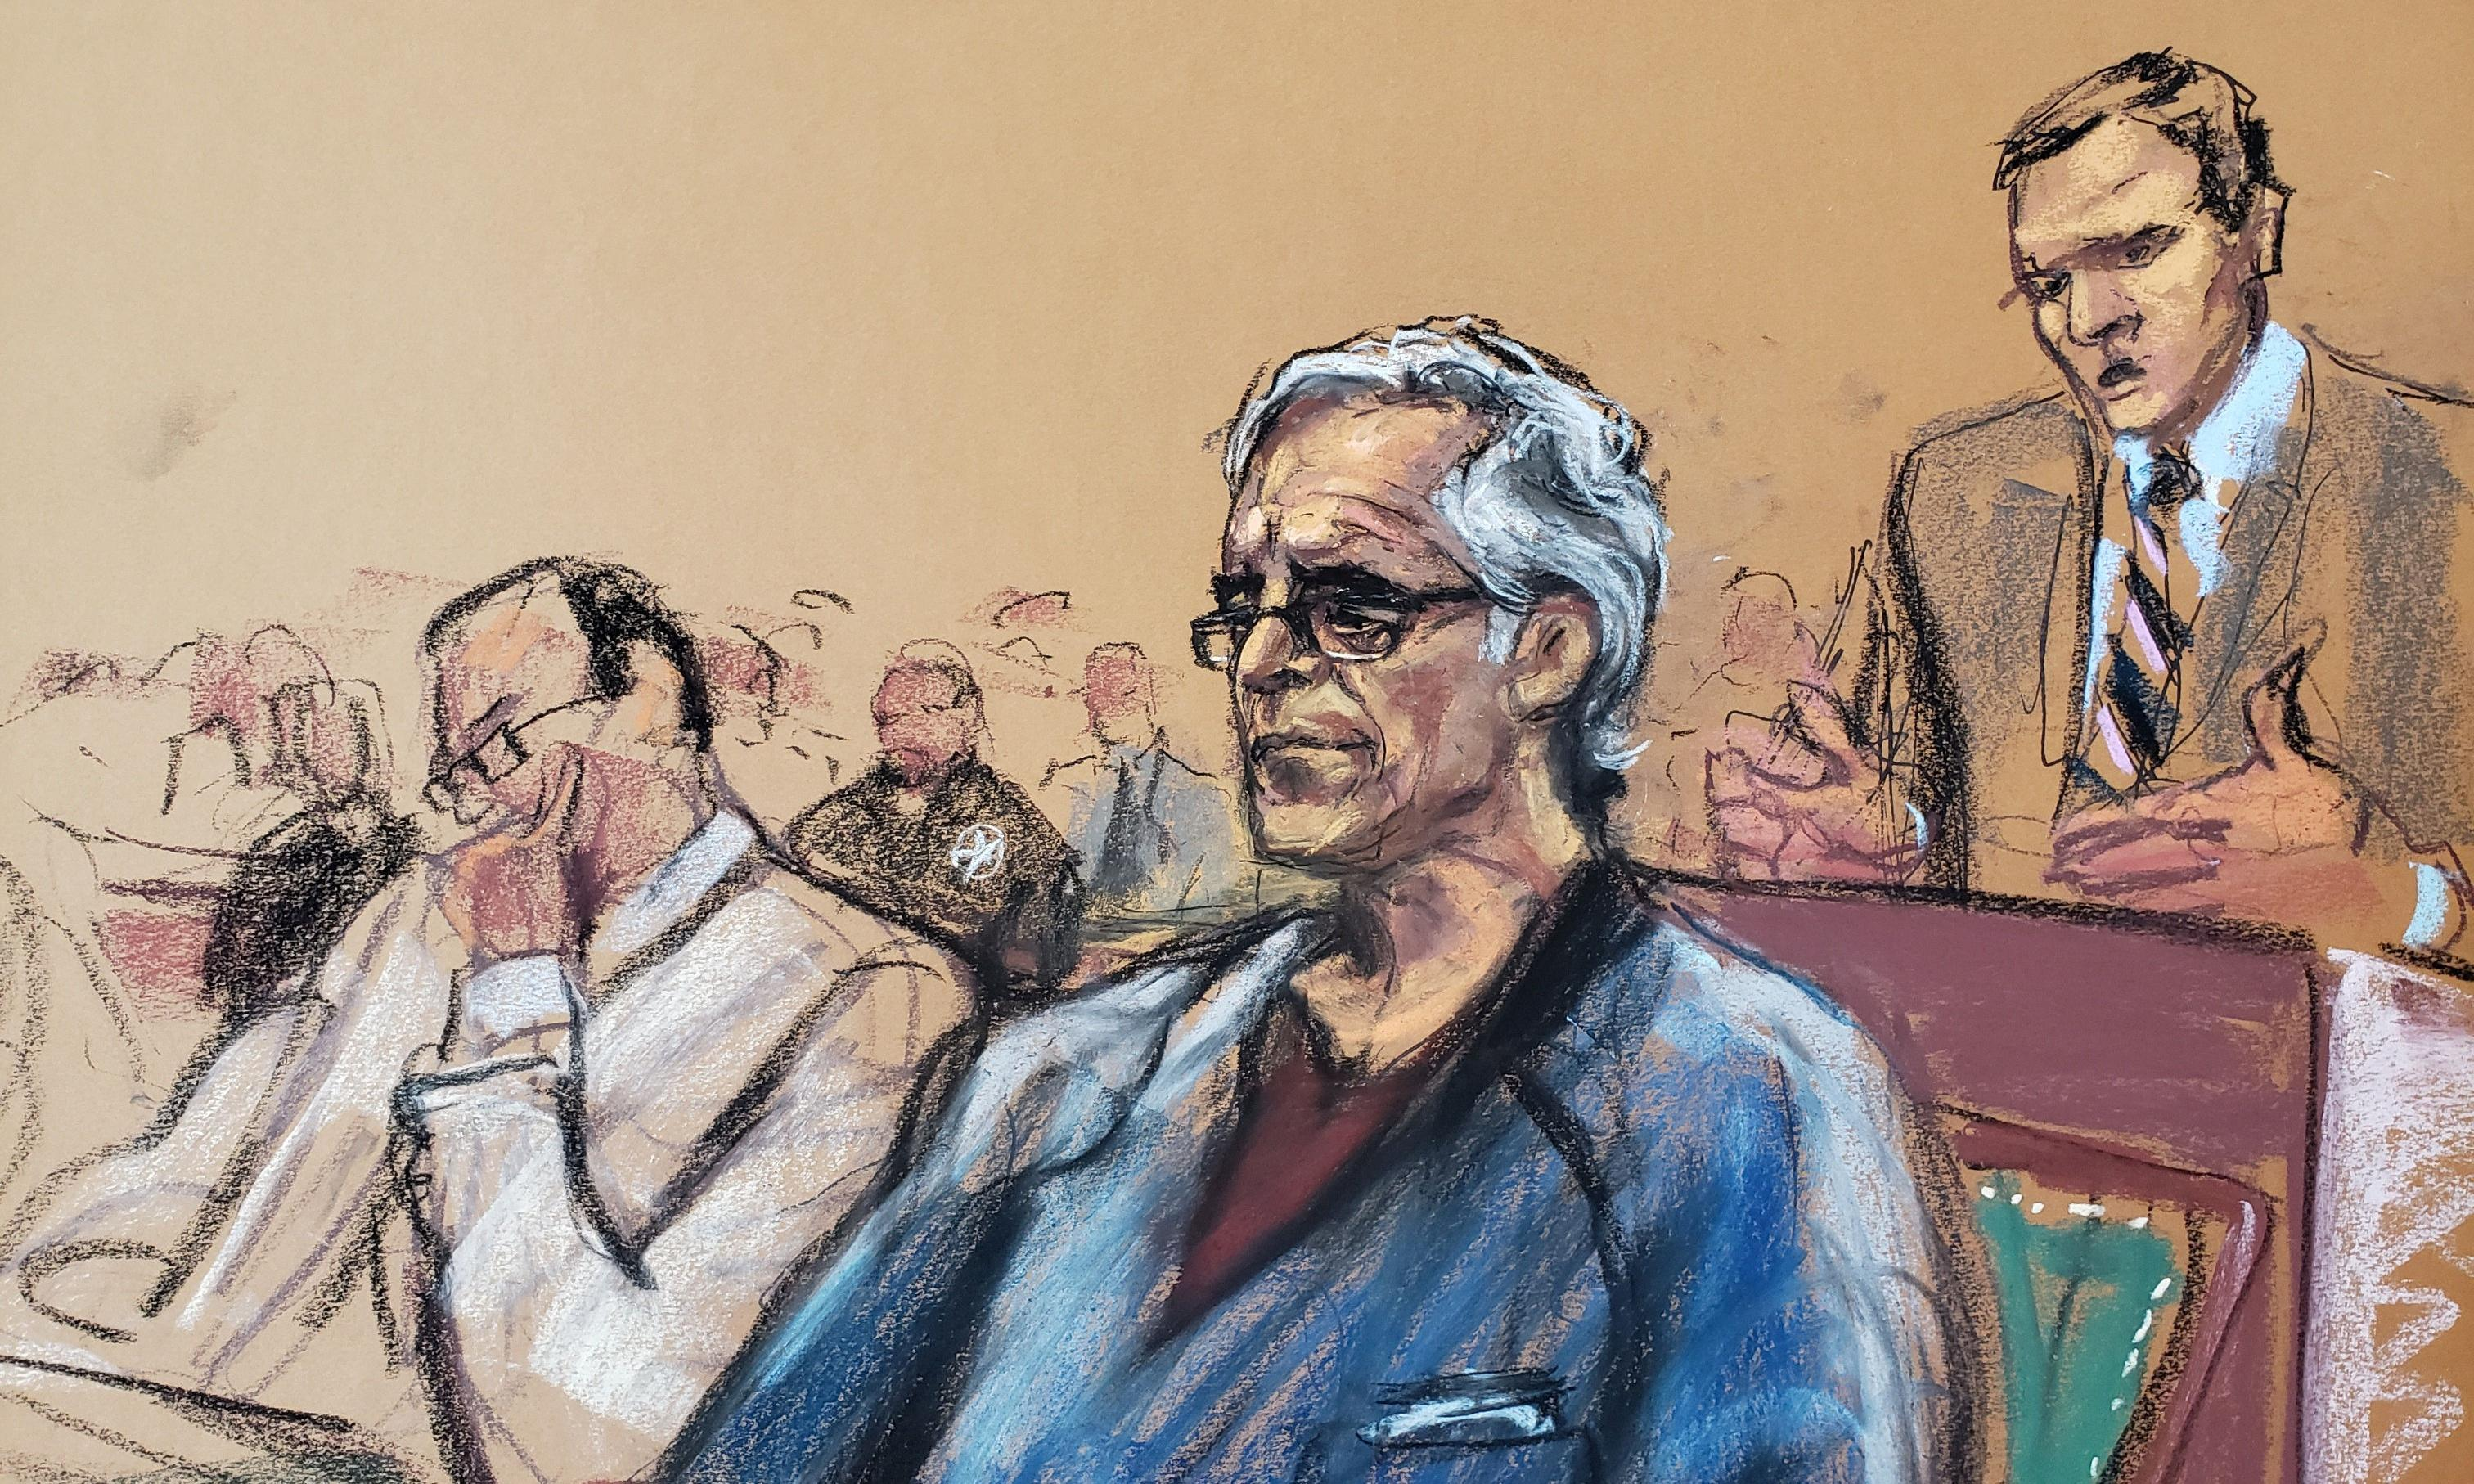 Jeffrey Epstein: Florida looks at possible lax monitoring after 2008 plea deal